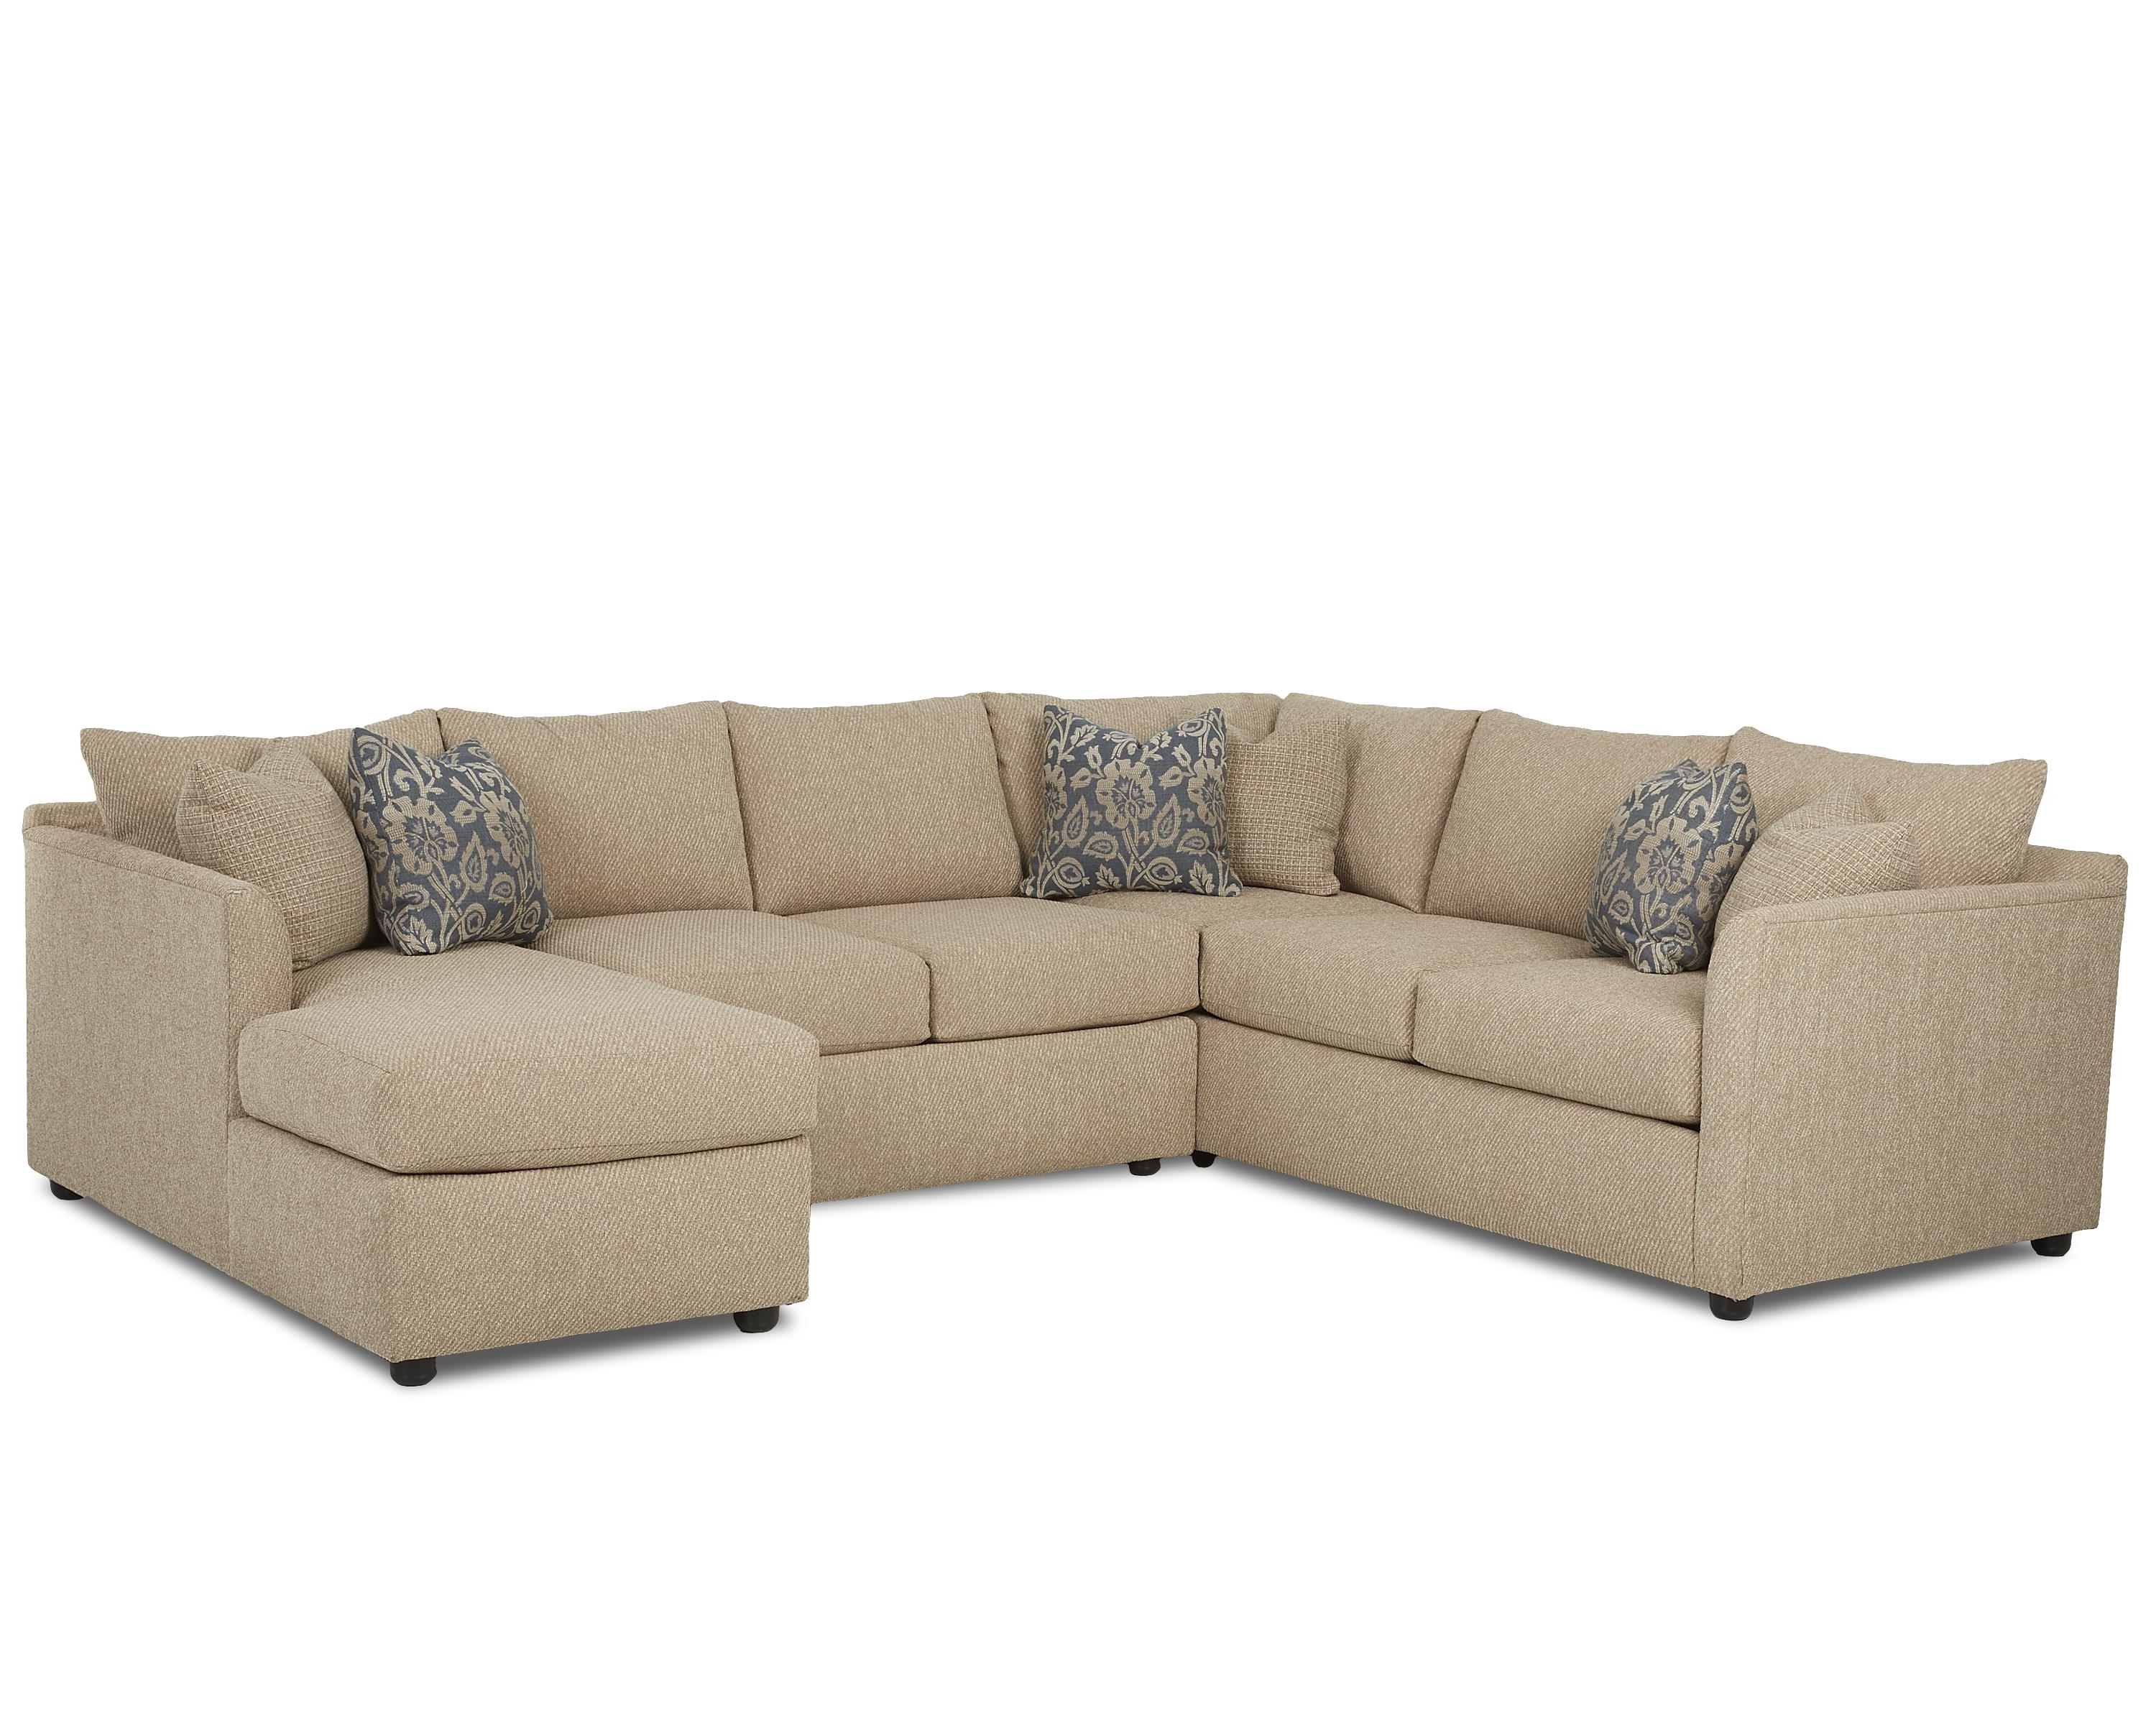 Transitional Sectional Sofa With Chaisetrisha Yearwood Home Inside Preferred Sectional Sofas In Atlanta (View 15 of 15)